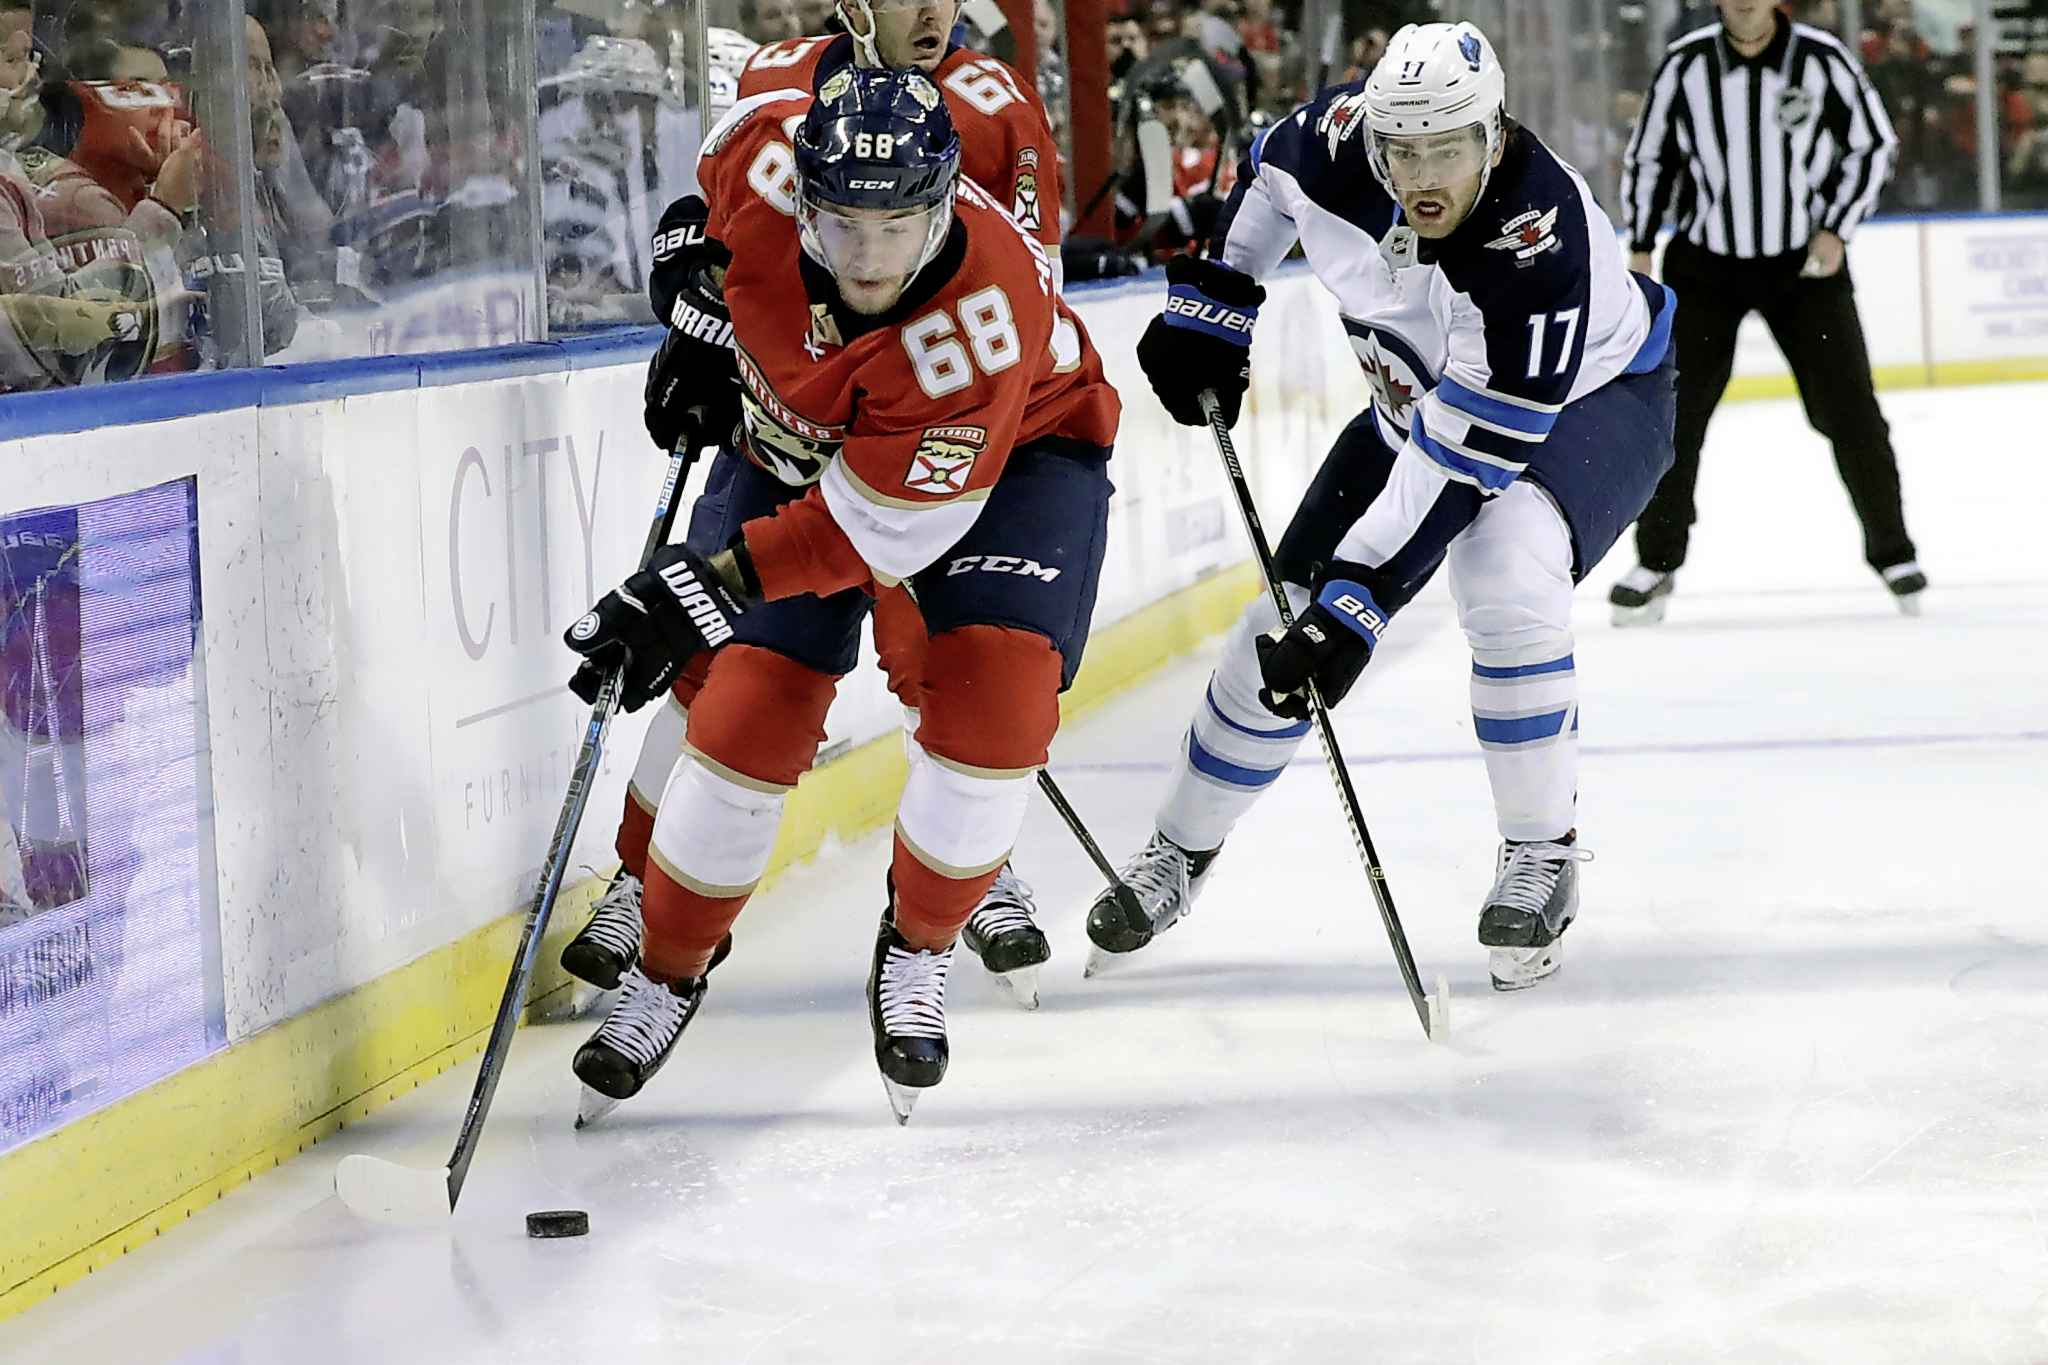 Florida Panthers centre Mike Hoffman skates with the puck with Winnipeg Jets' Adam Lowry in pursuit during the first period.